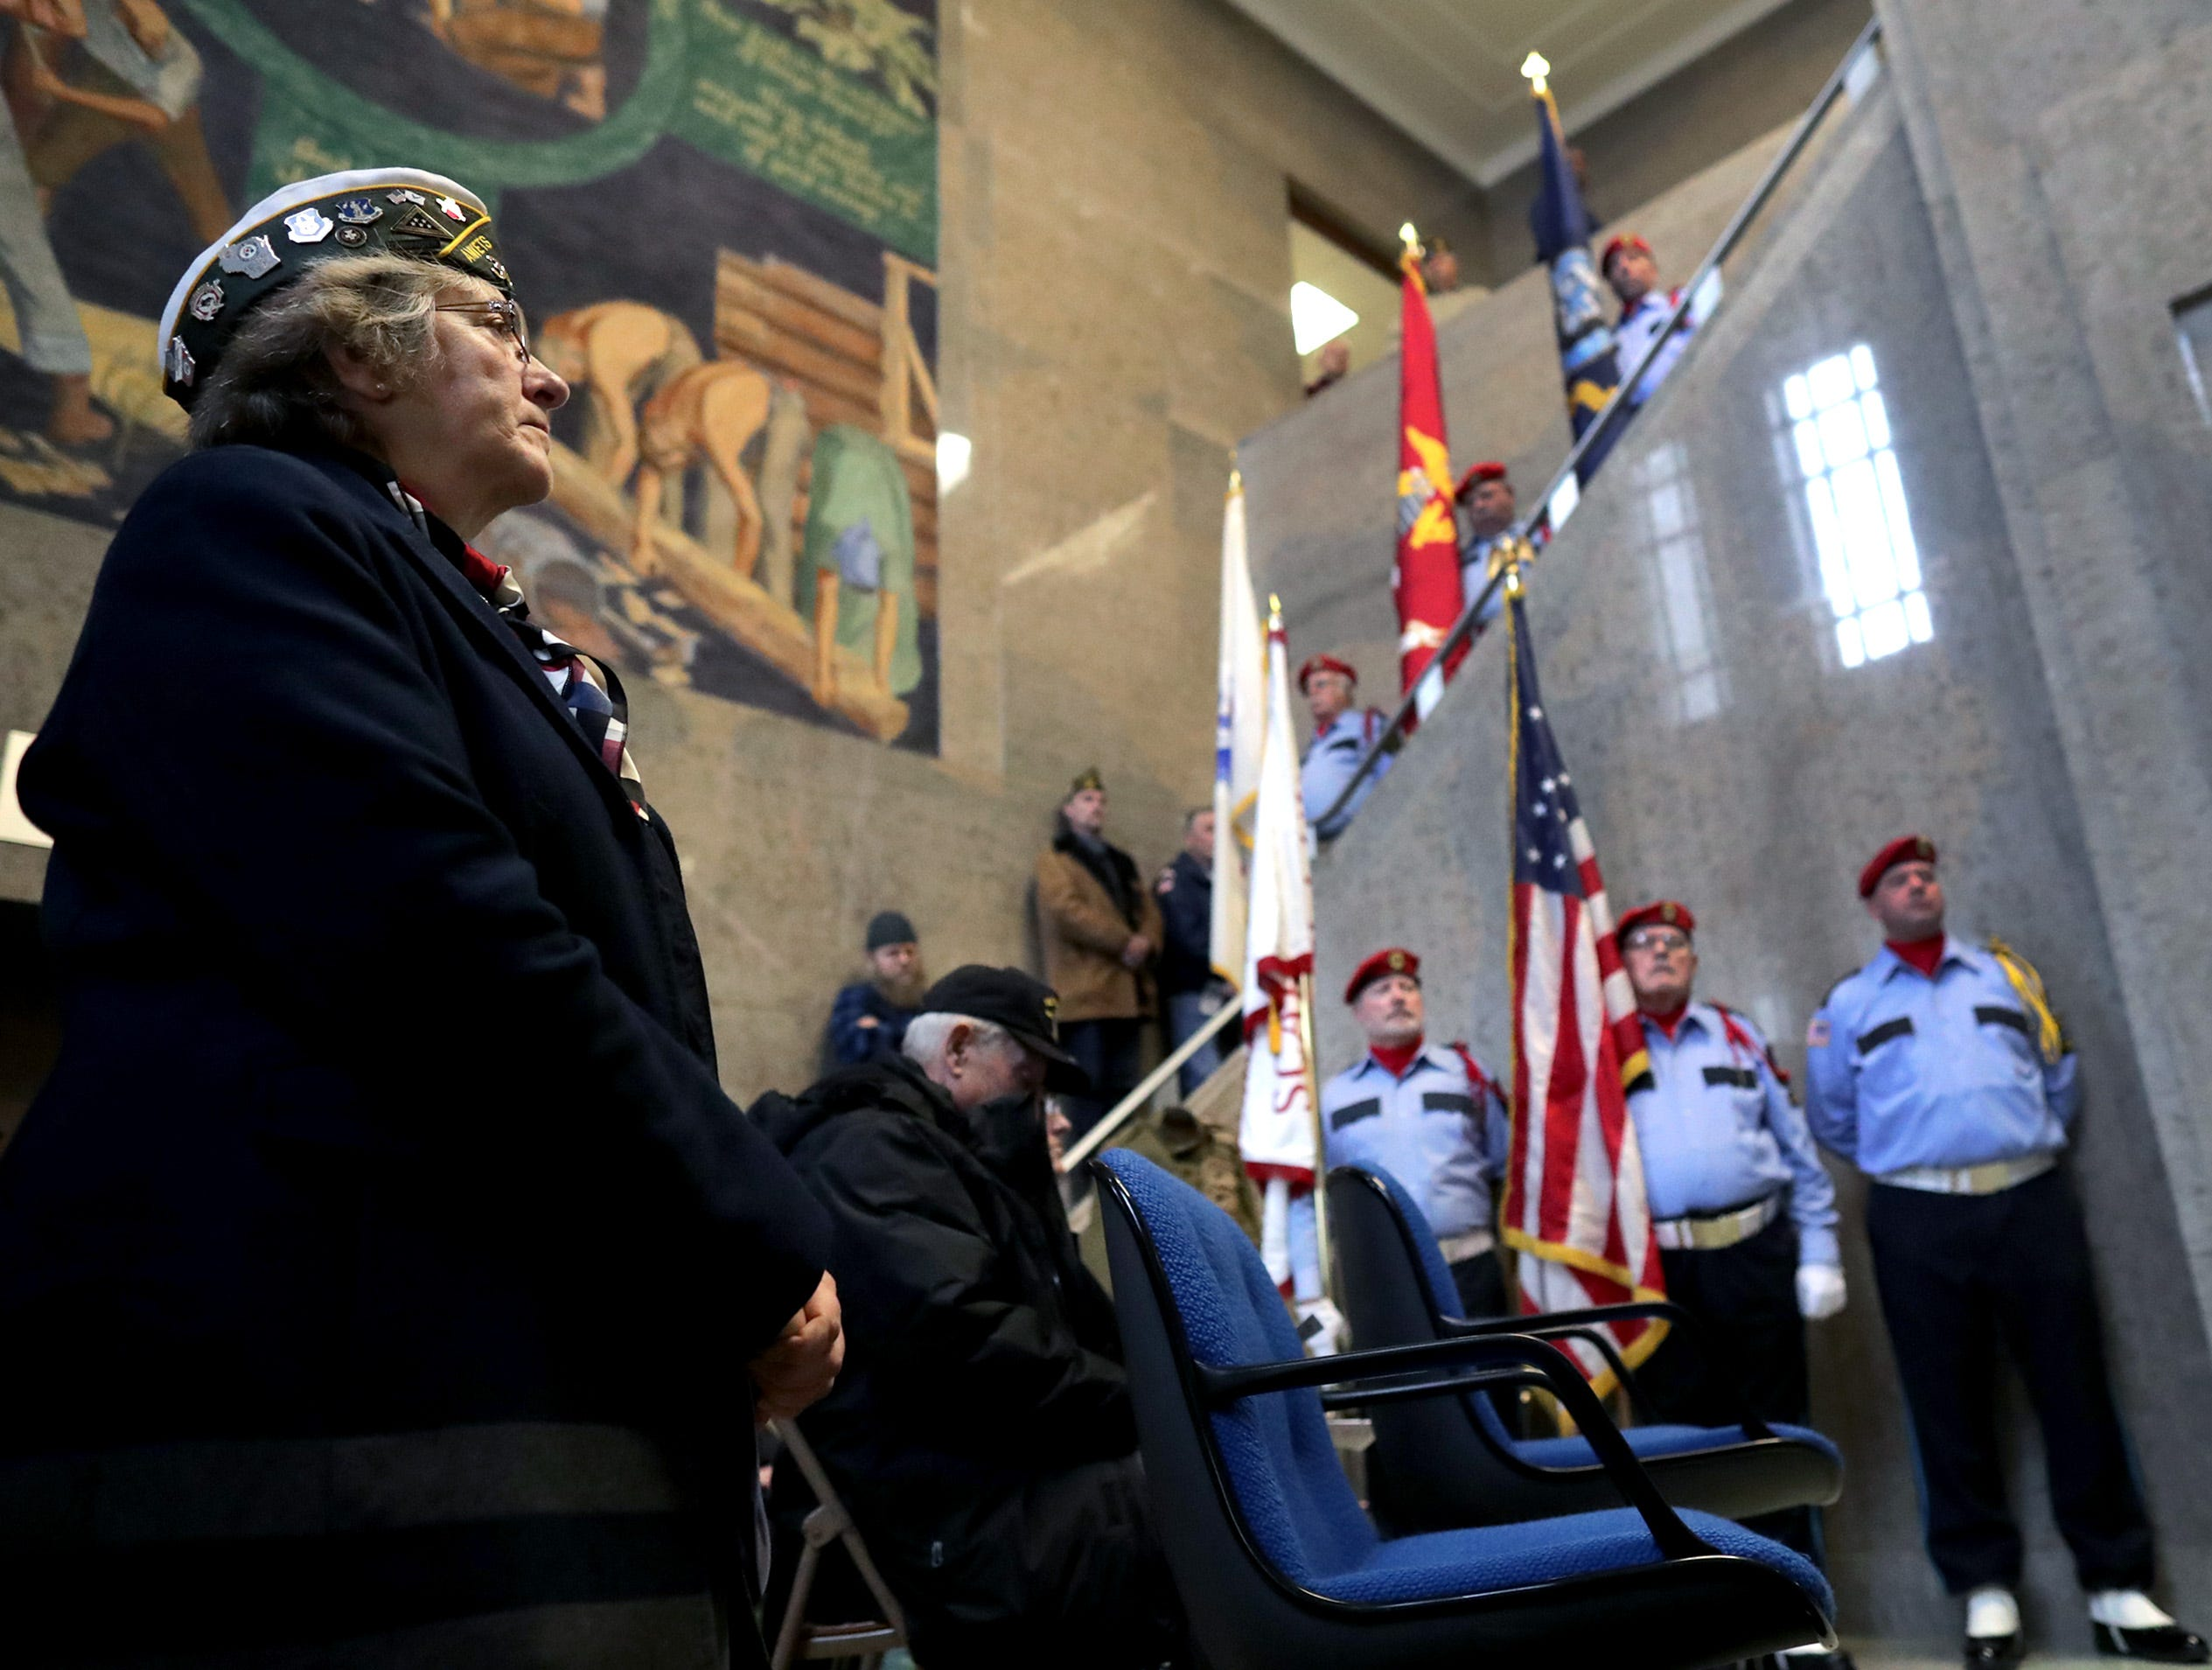 Kim Kraddock, Air Force, listens during the Outagamie County Veterans Day Service on Sunday, Nov. 11, 2018, in Appleton, Wis. The service, in part, commemorated the 100th anniversary of the end of WW I.